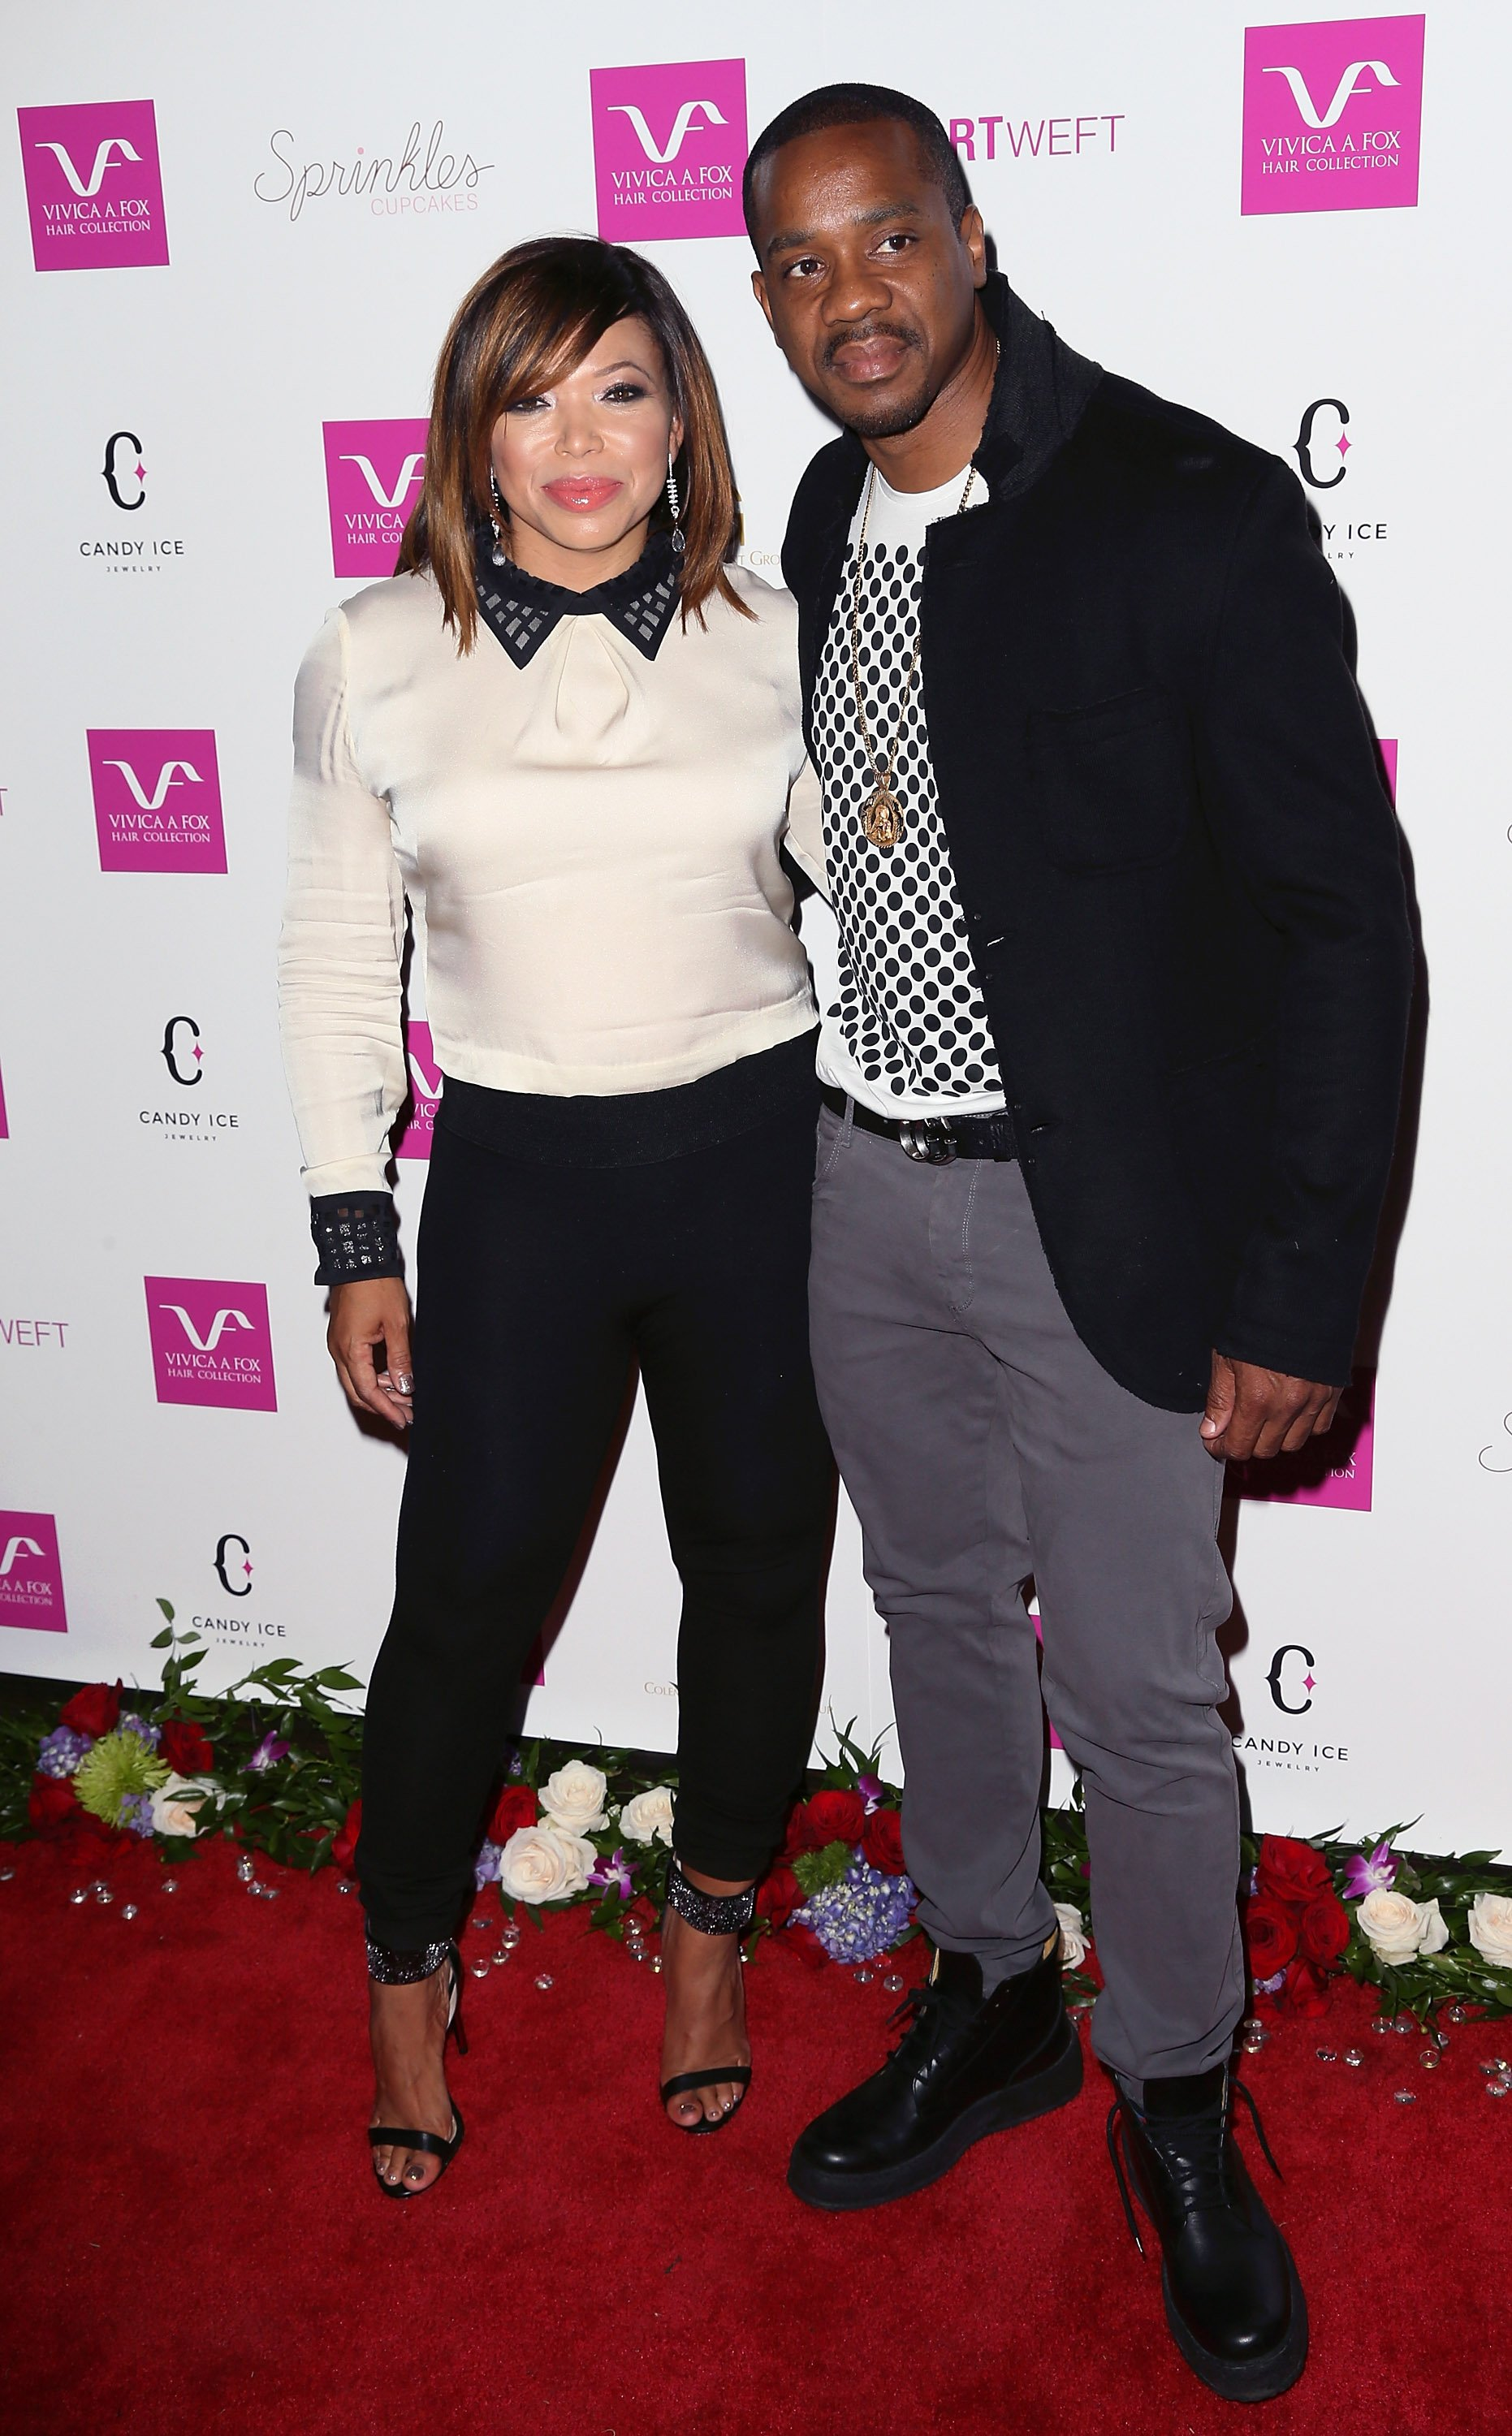 Tisha Campbell and Duane Martin at Vivica Fox's 5th birthday party in August 2014. | Photo: Getty Images